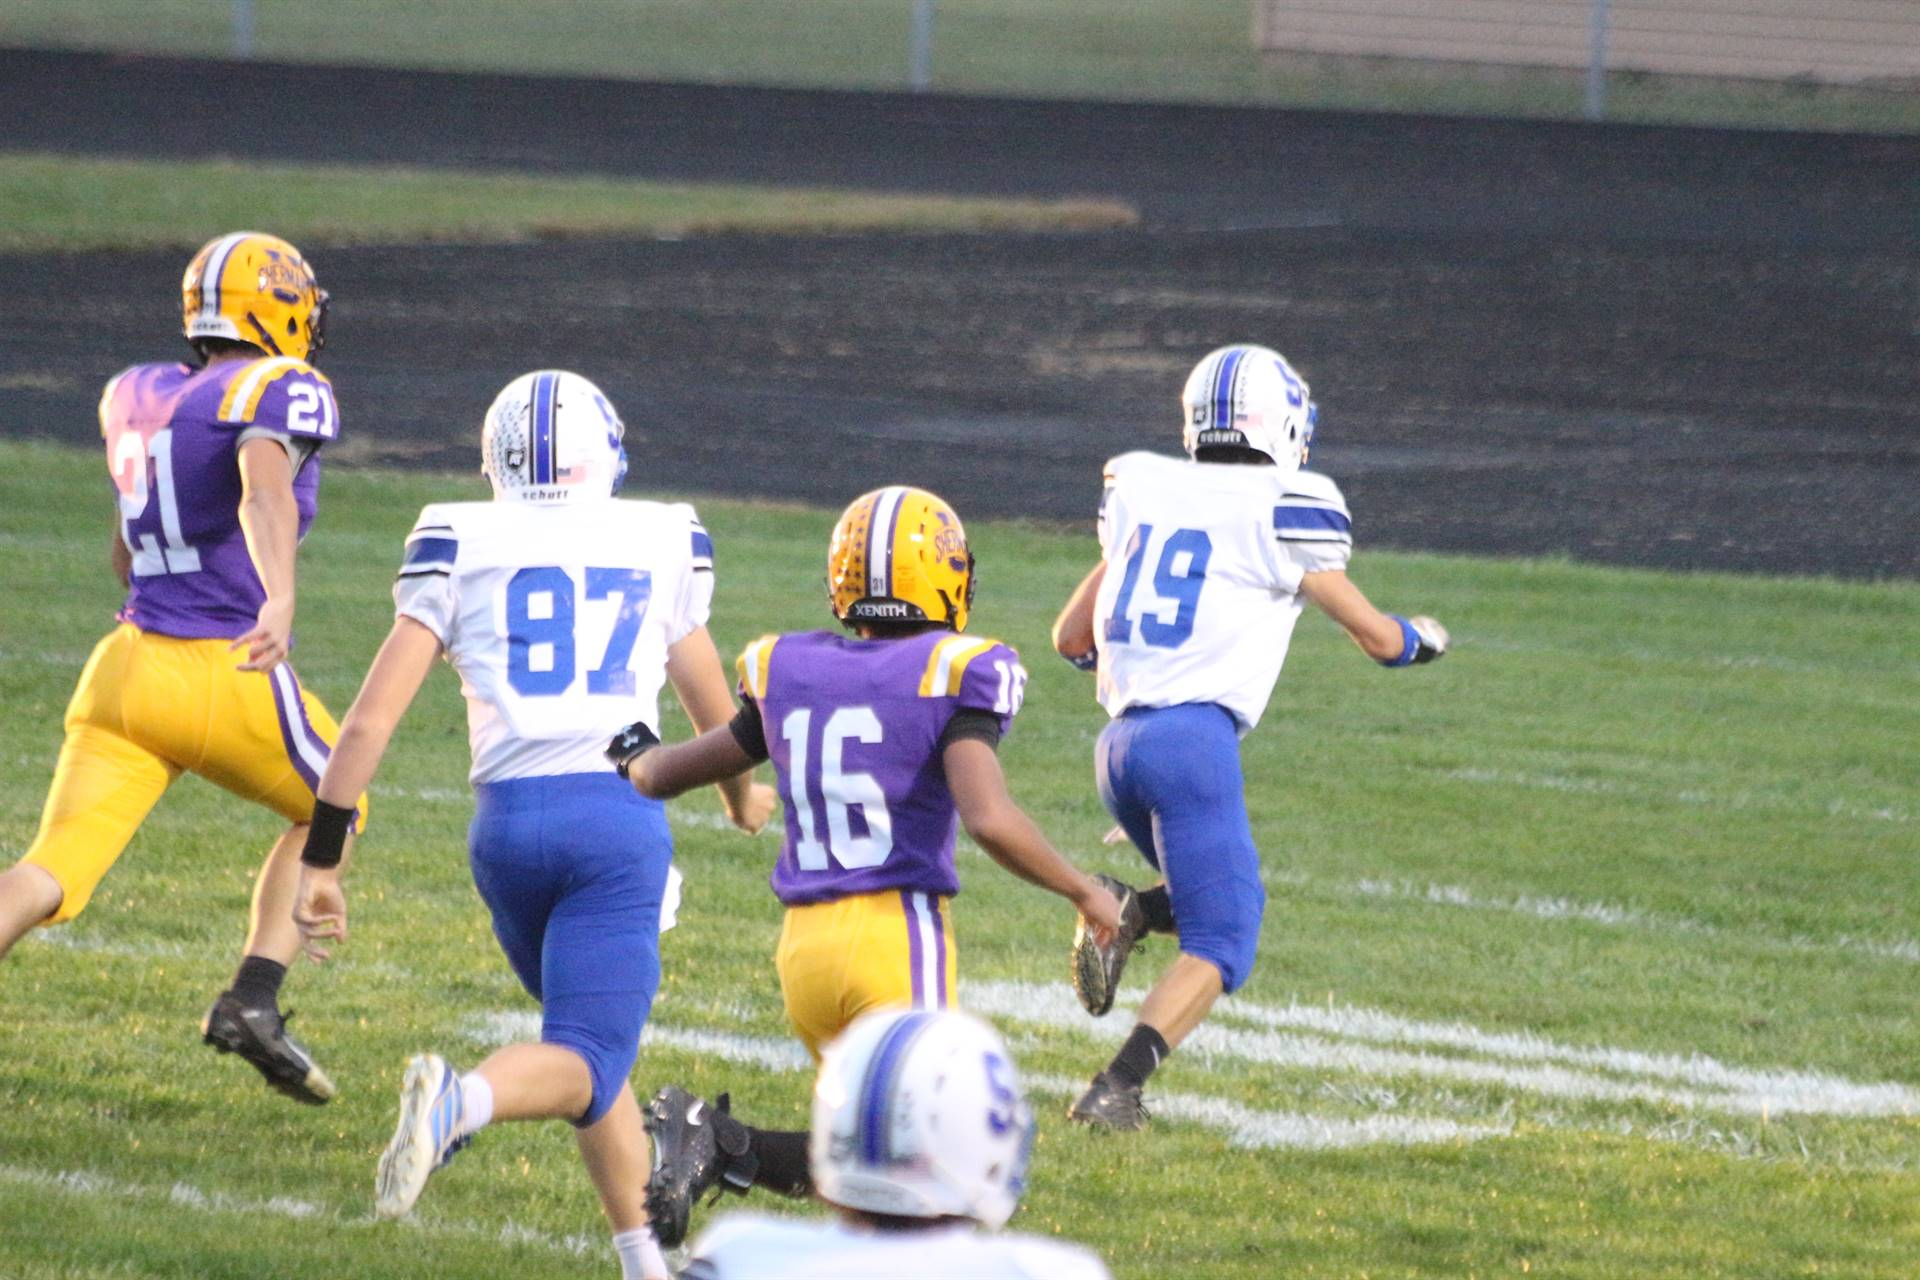 SE Football vs Unioto